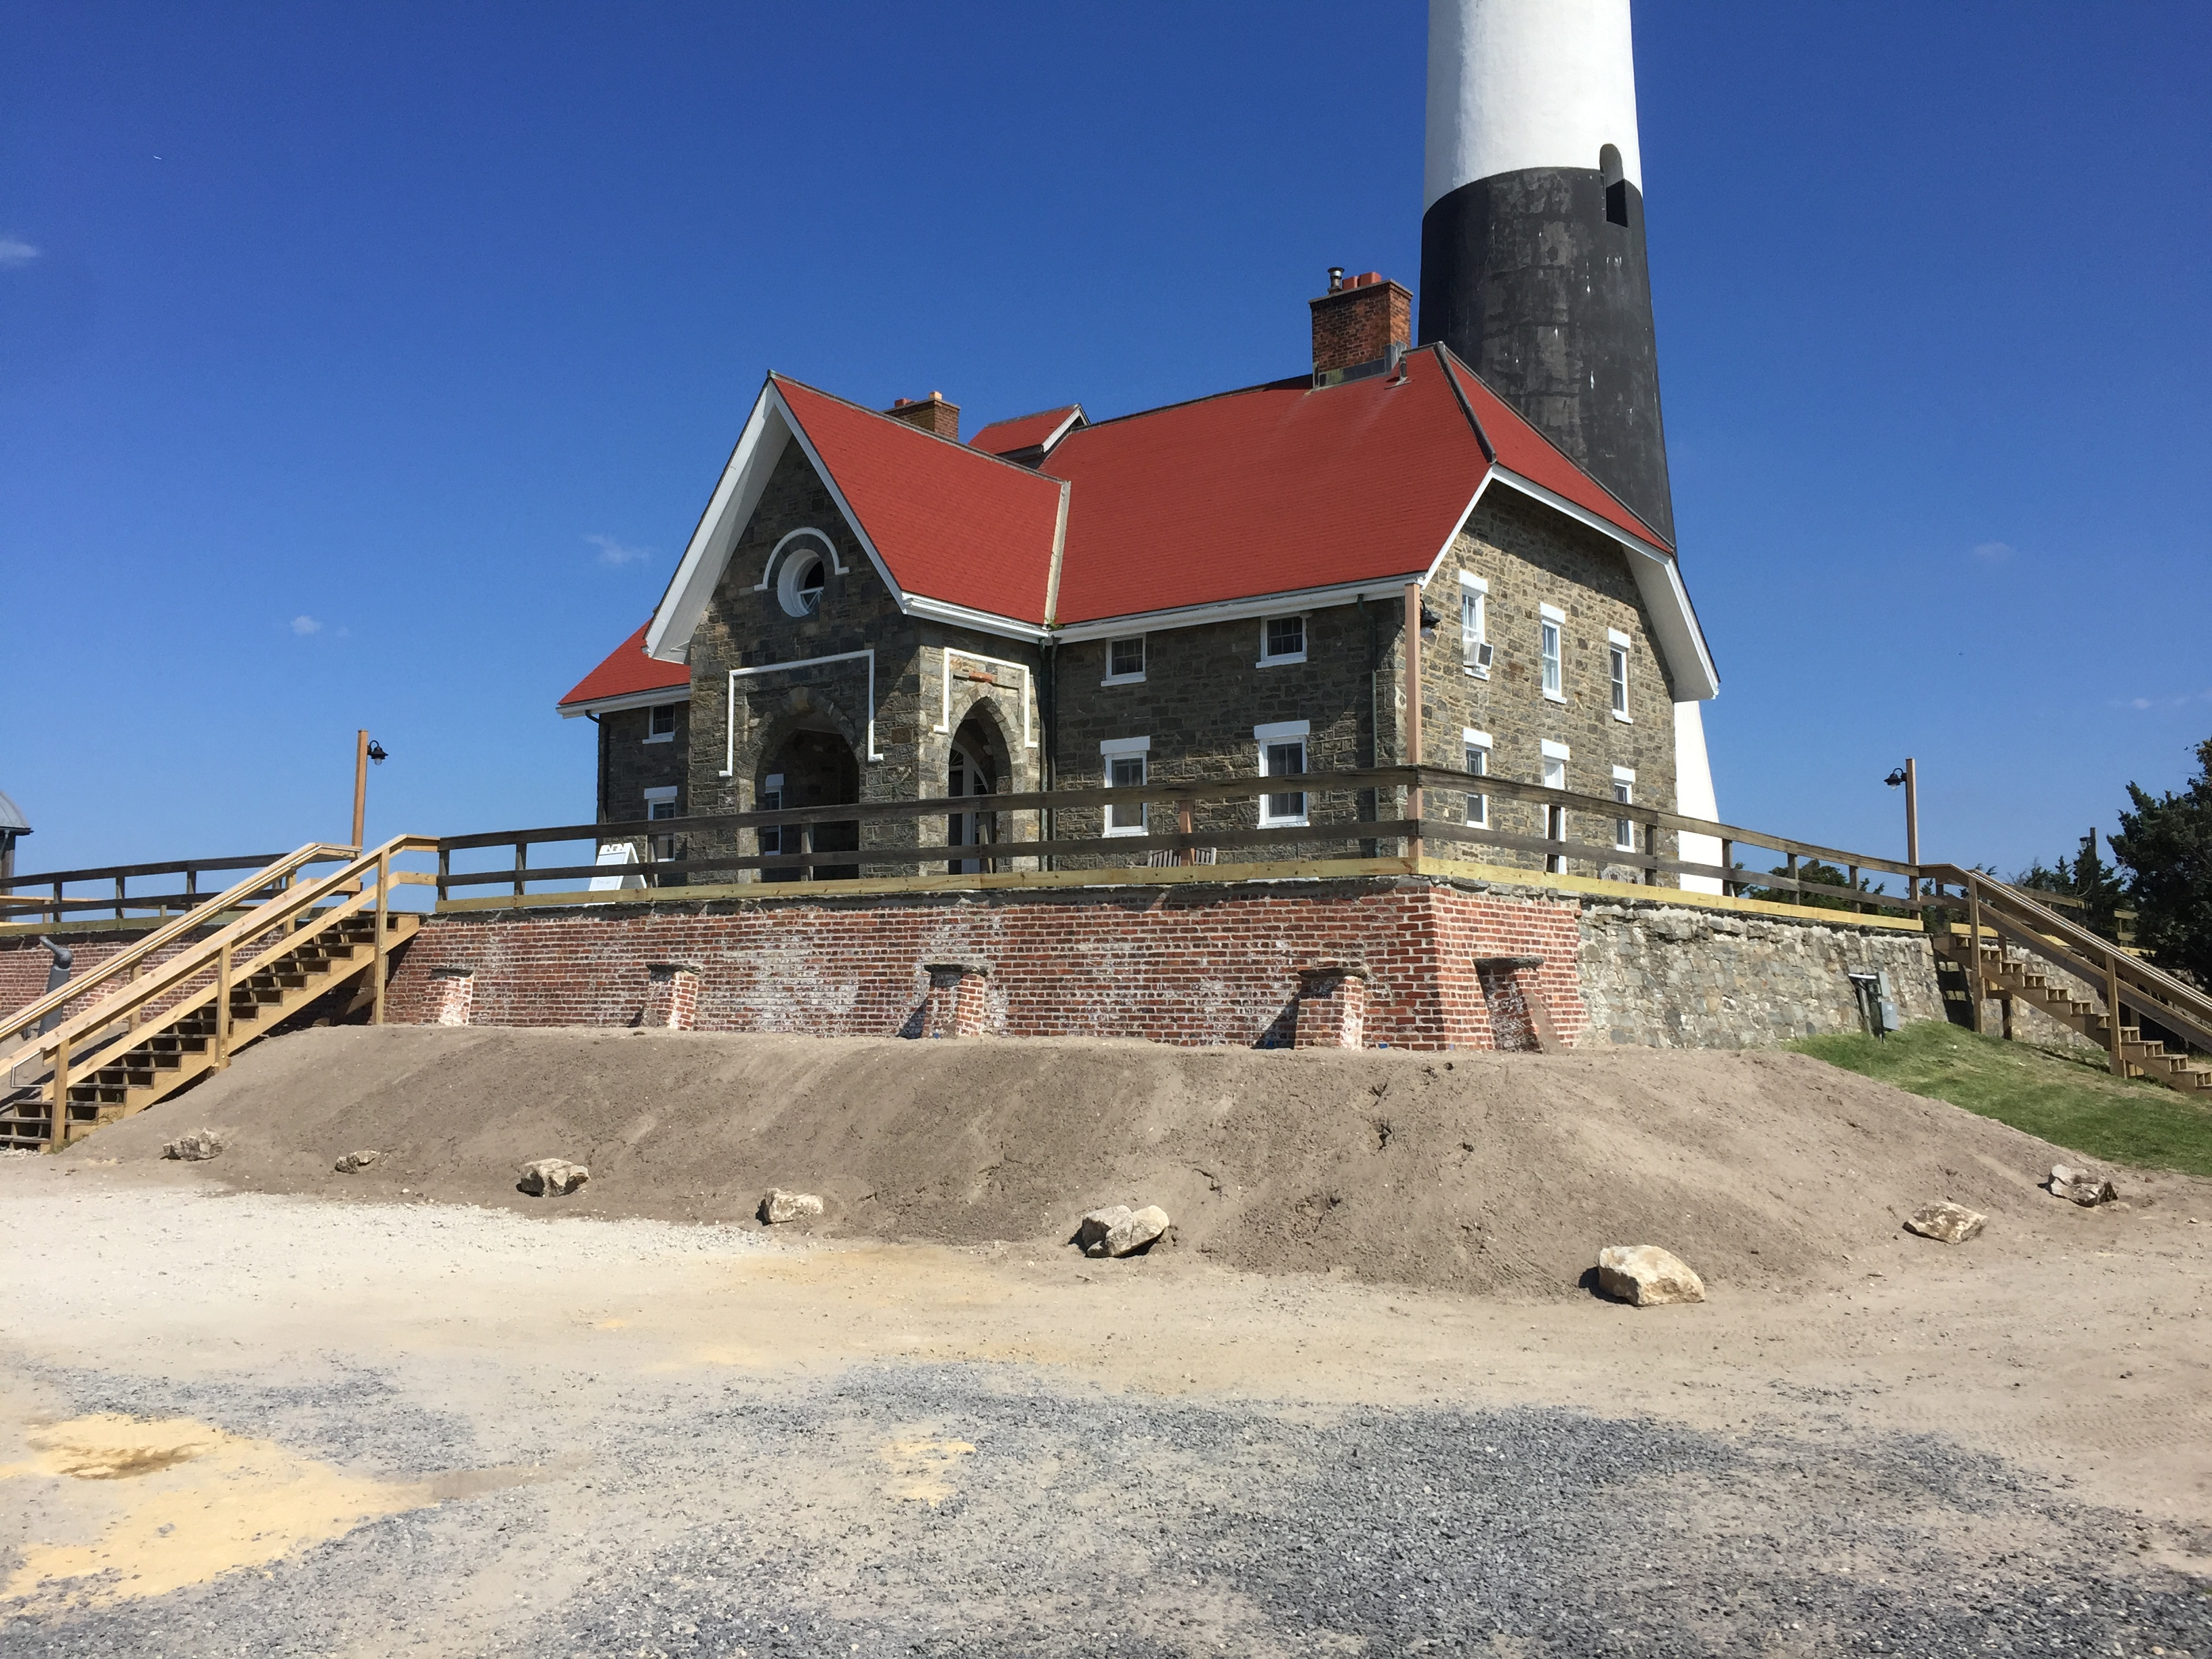 Historic lighthouse, keepers quarters and terrace.